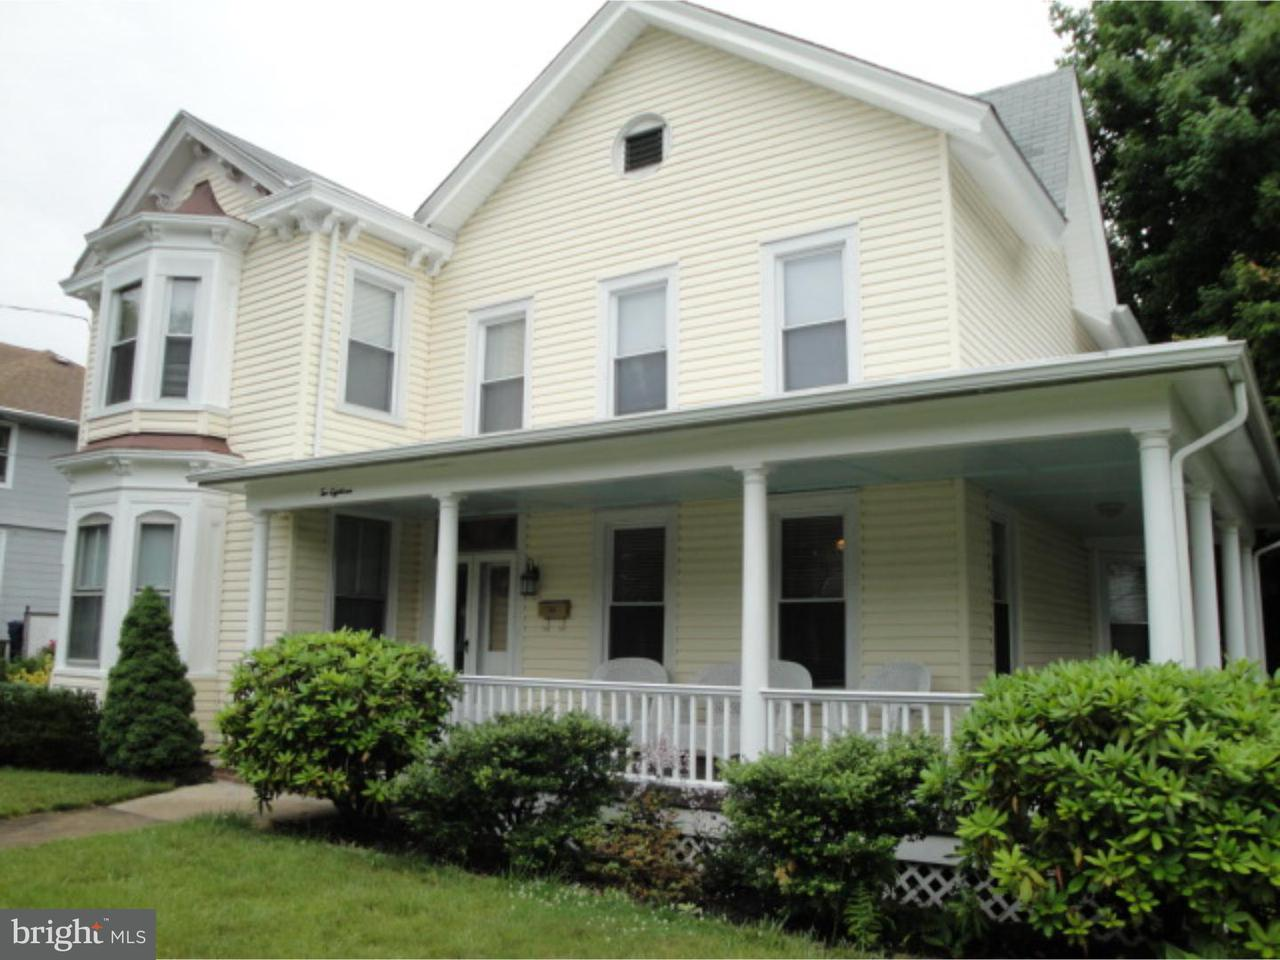 Single Family Home for Rent at 218 MORRISON Avenue Hightstown, New Jersey 08520 United StatesMunicipality: Hightstown Borough